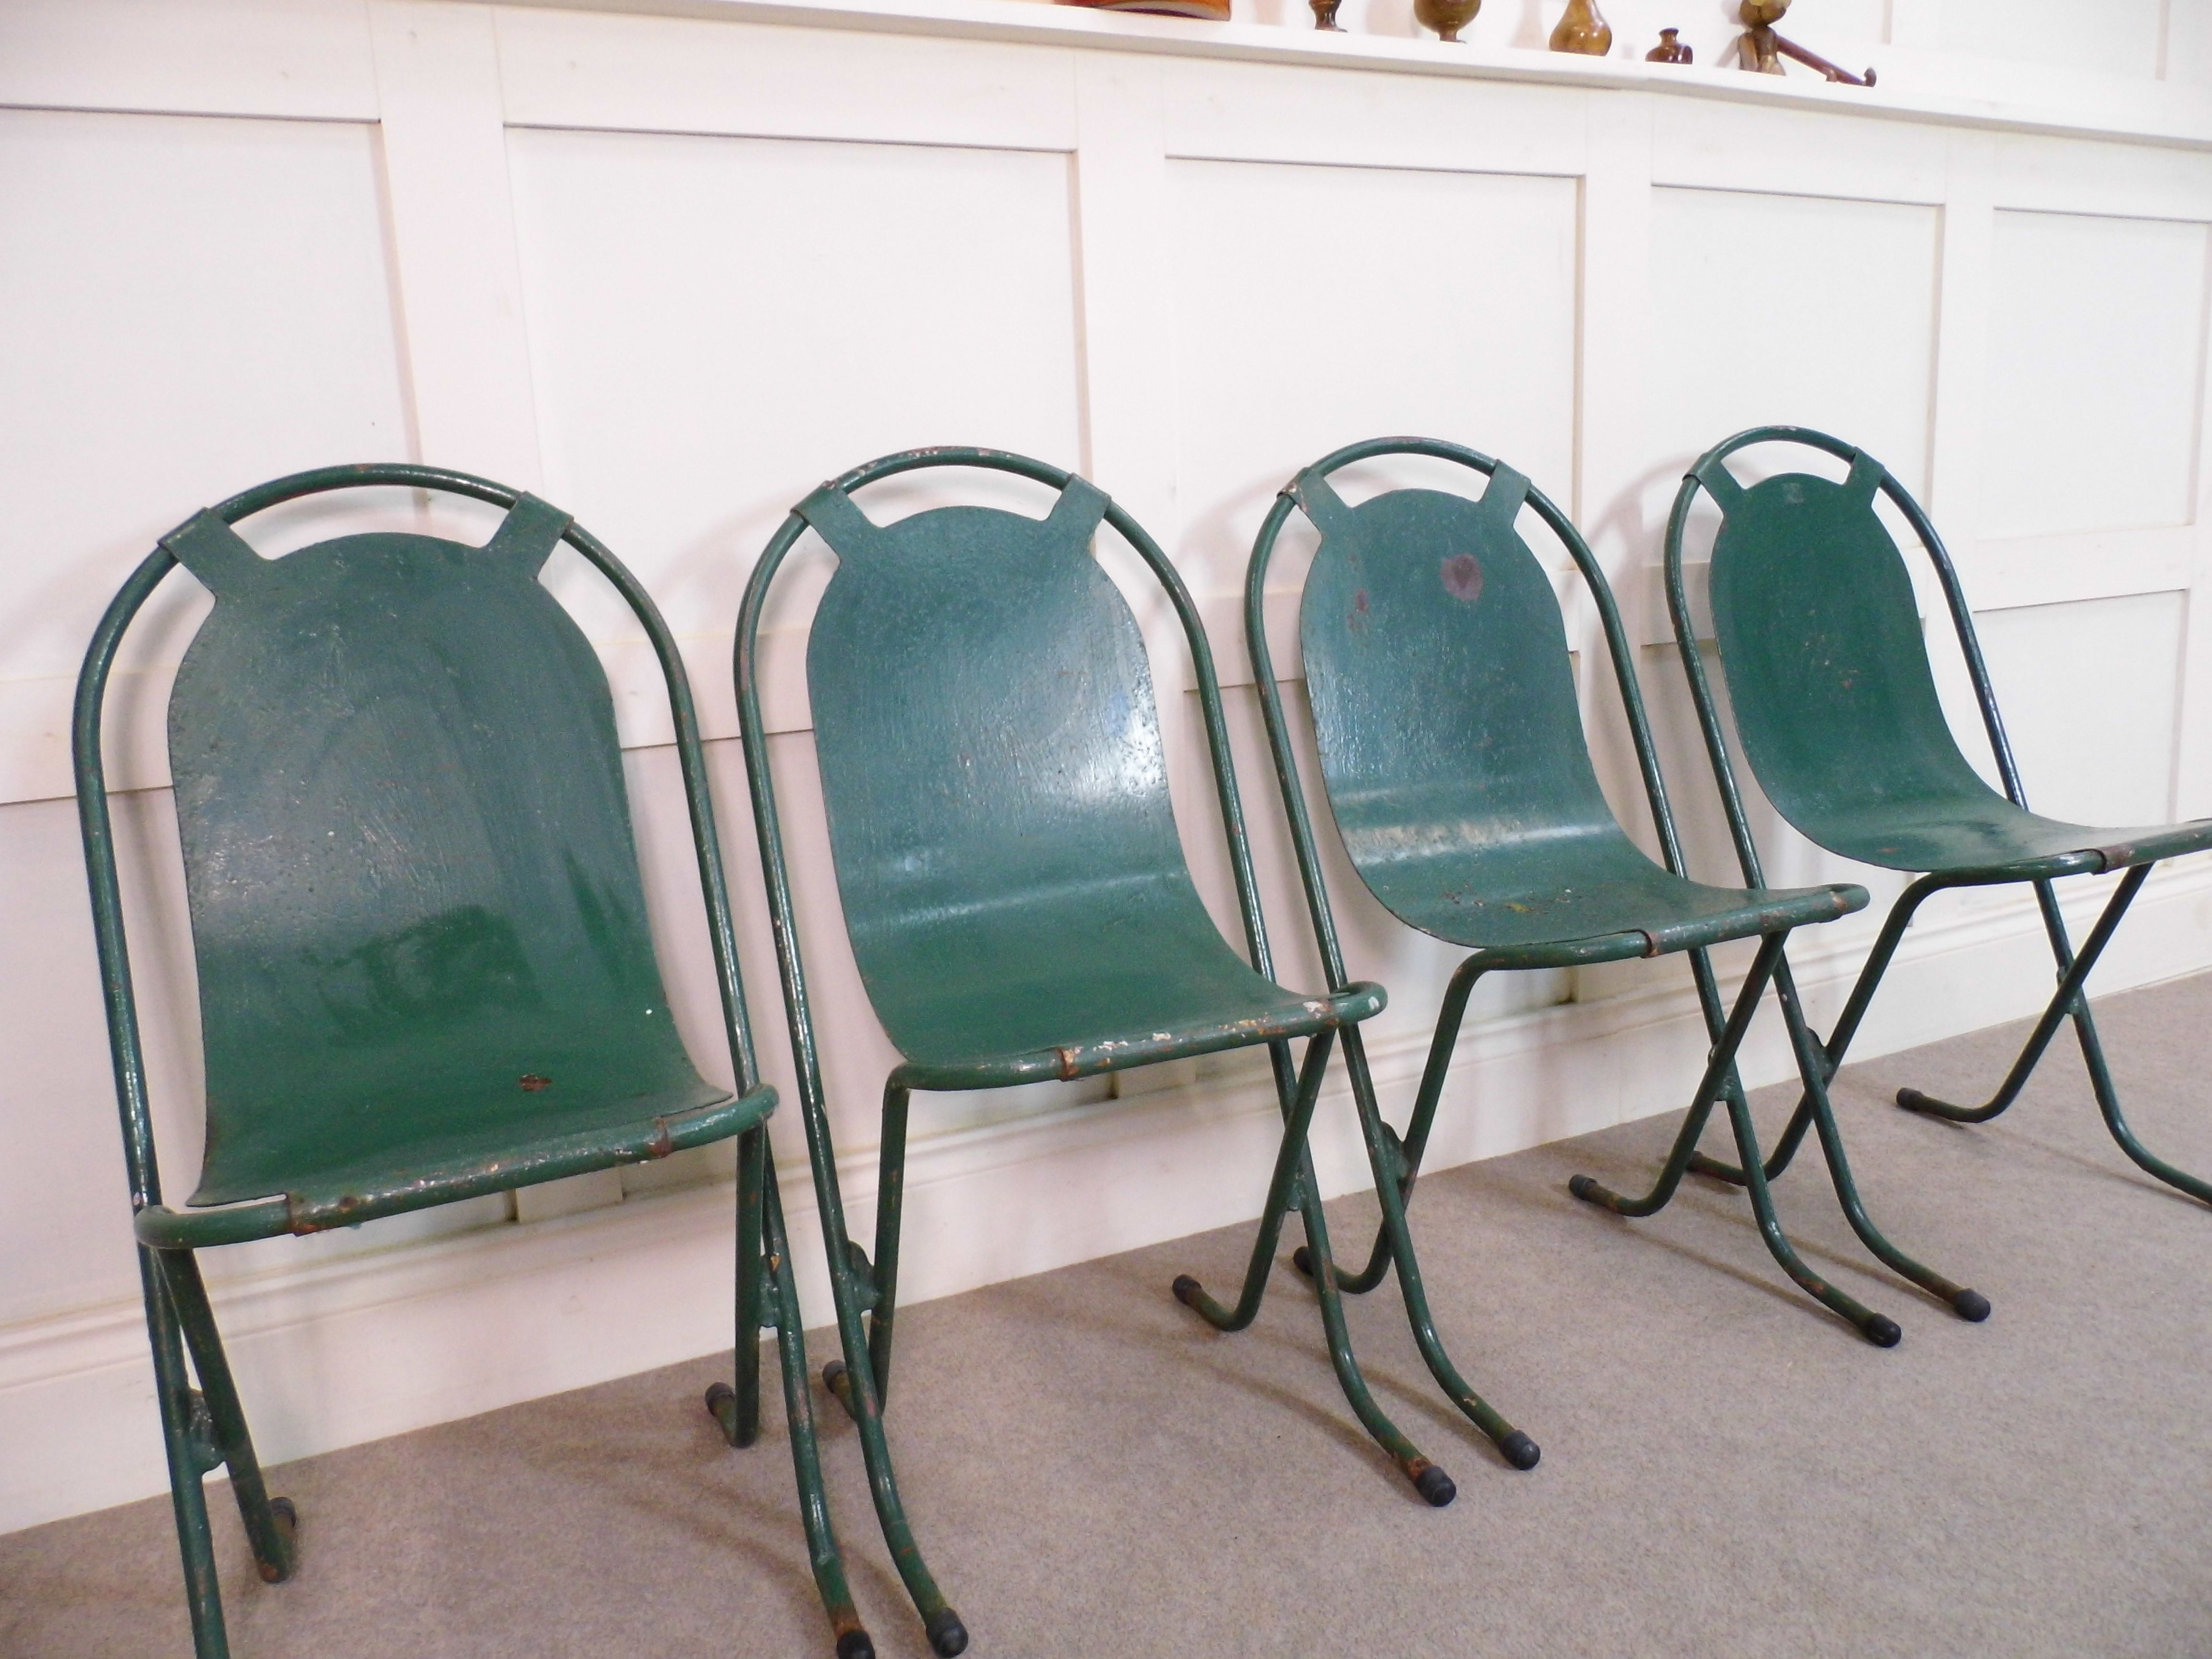 Vintage stacking metal chairs by Sebel stack a bye tubualr